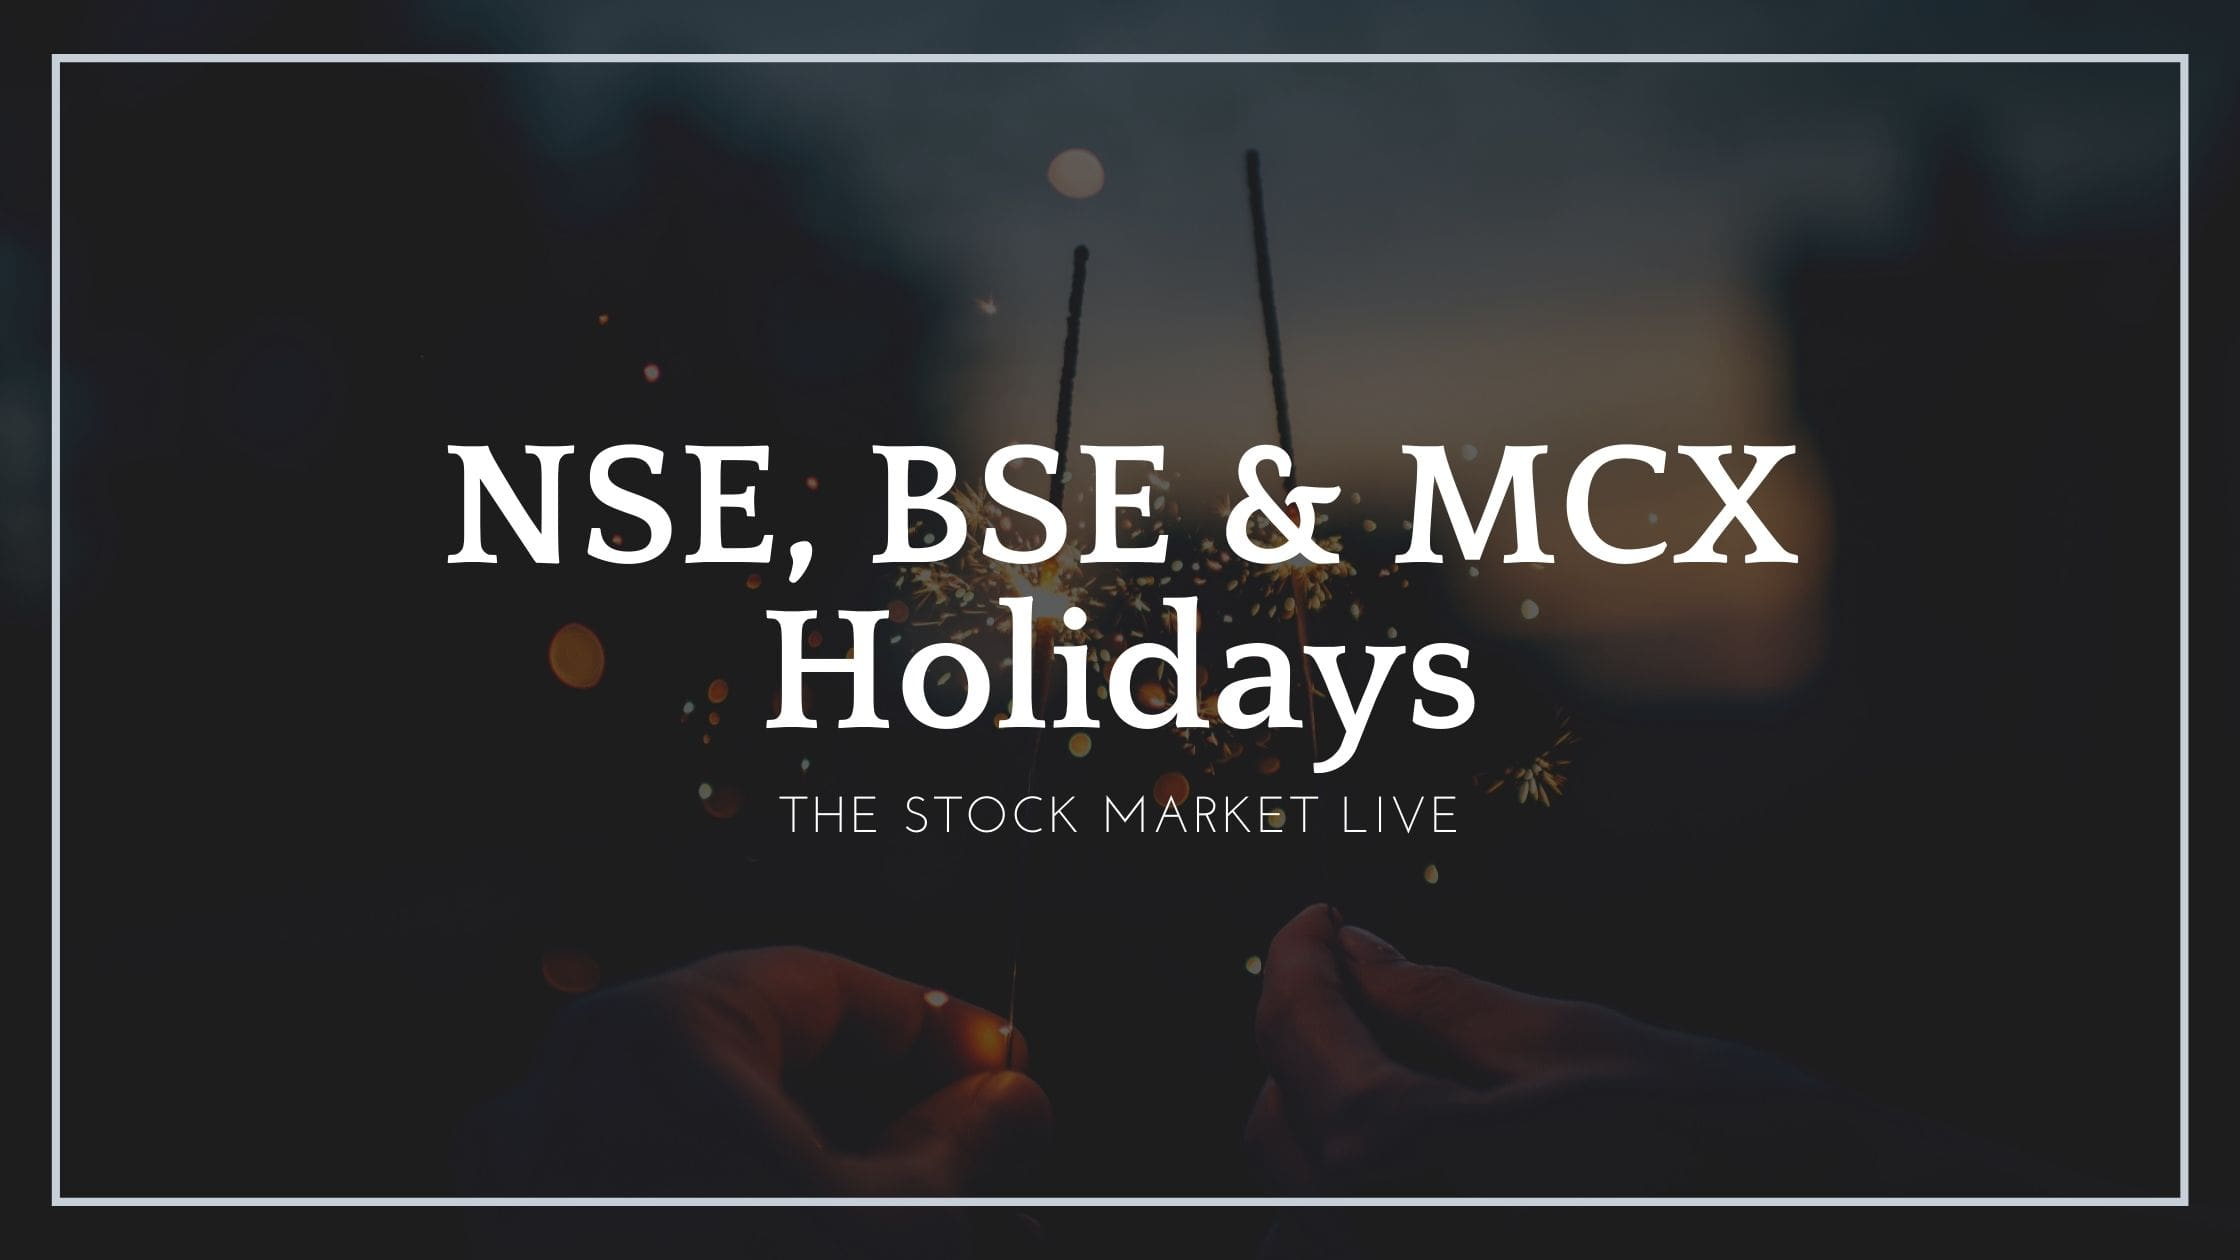 NSE, BSE & MCX Holidays 2021